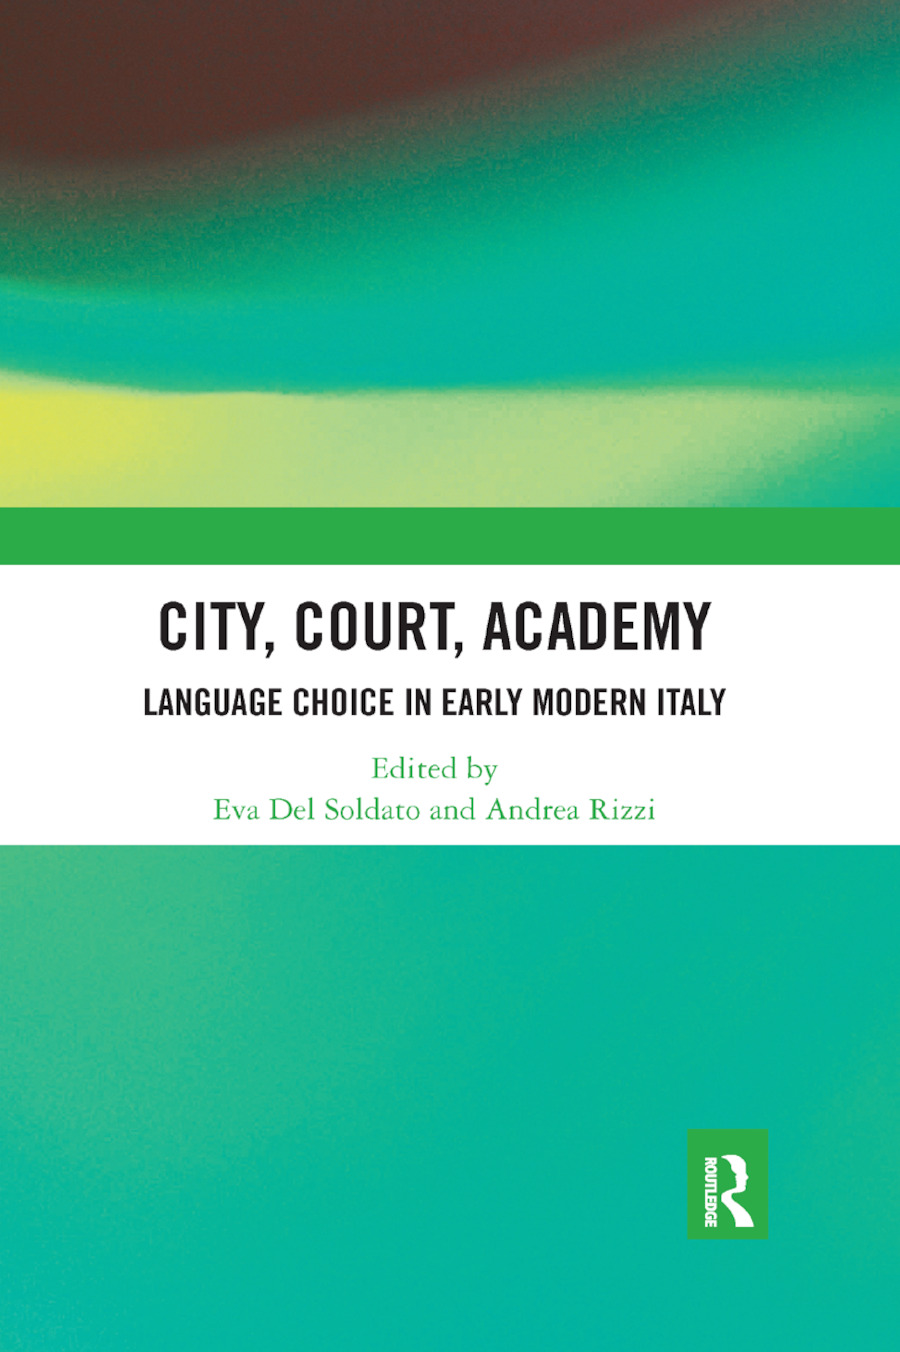 City, Court, Academy: Language Choice in Early Modern Italy book cover